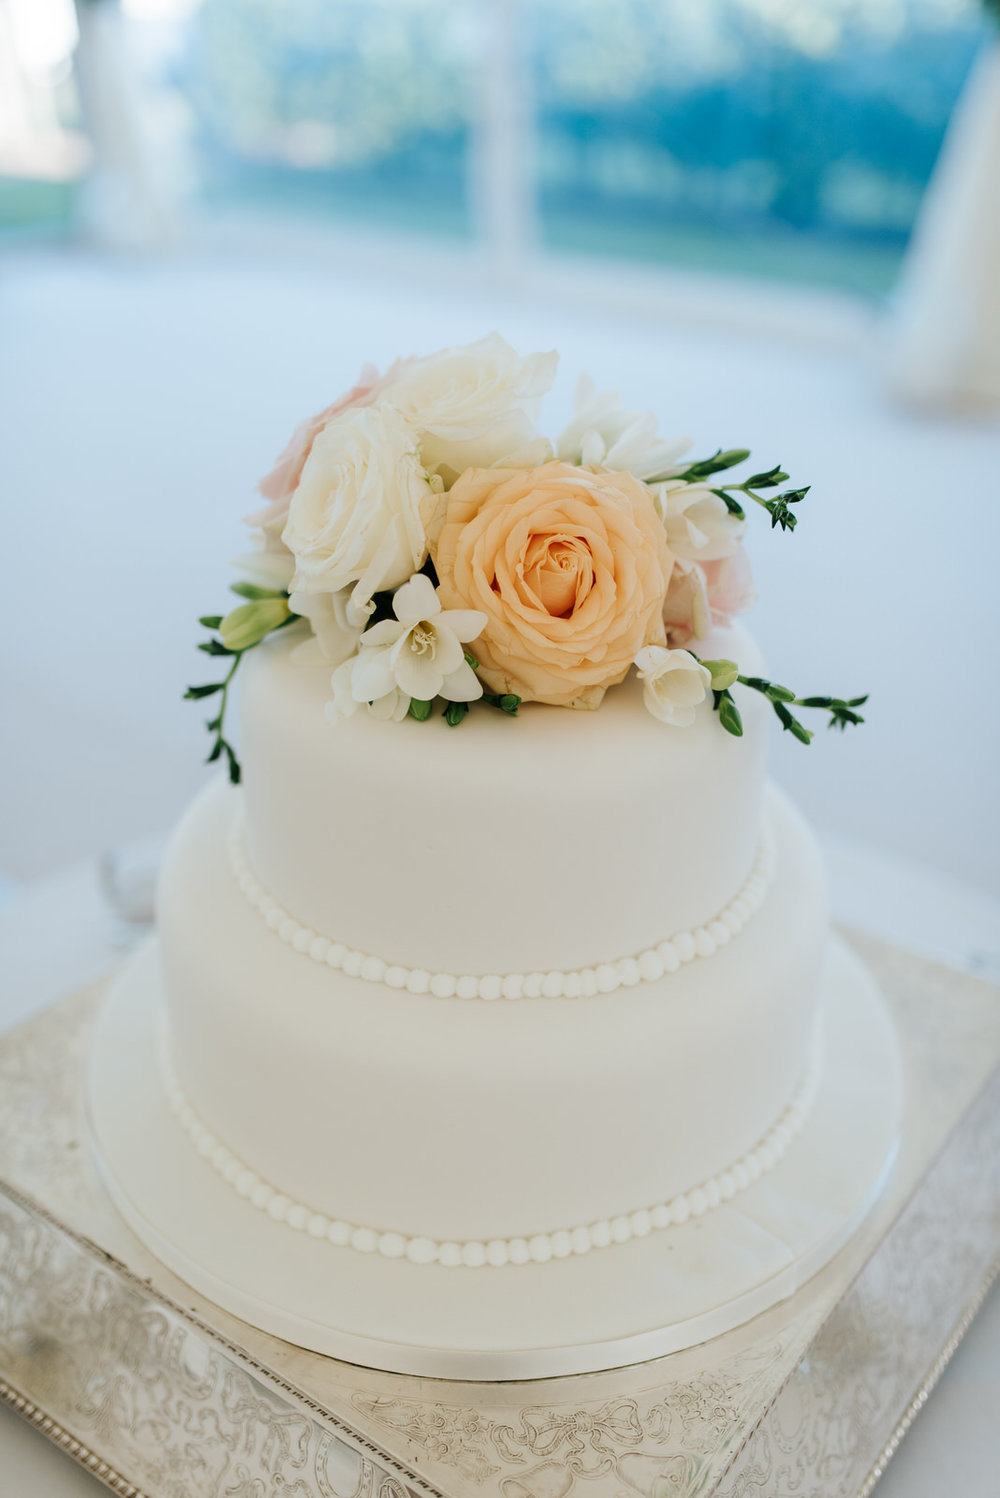 Photo of wedding cake with flowers by Twinkling Twine